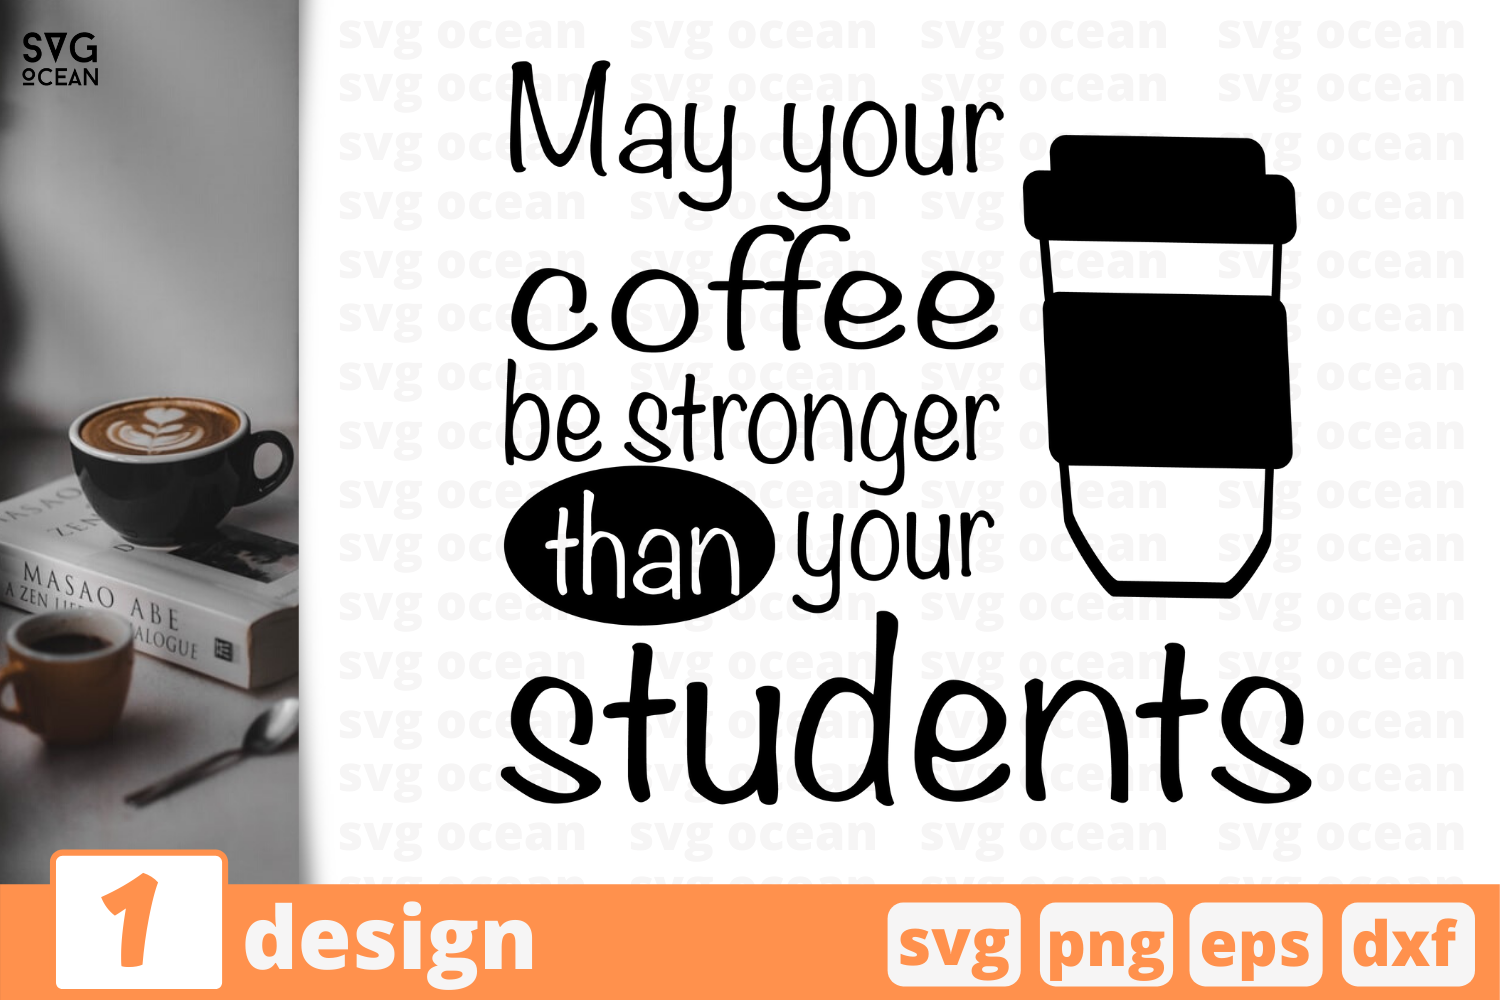 Download Free May Your Coffee Quote Graphic By Svgocean Creative Fabrica for Cricut Explore, Silhouette and other cutting machines.